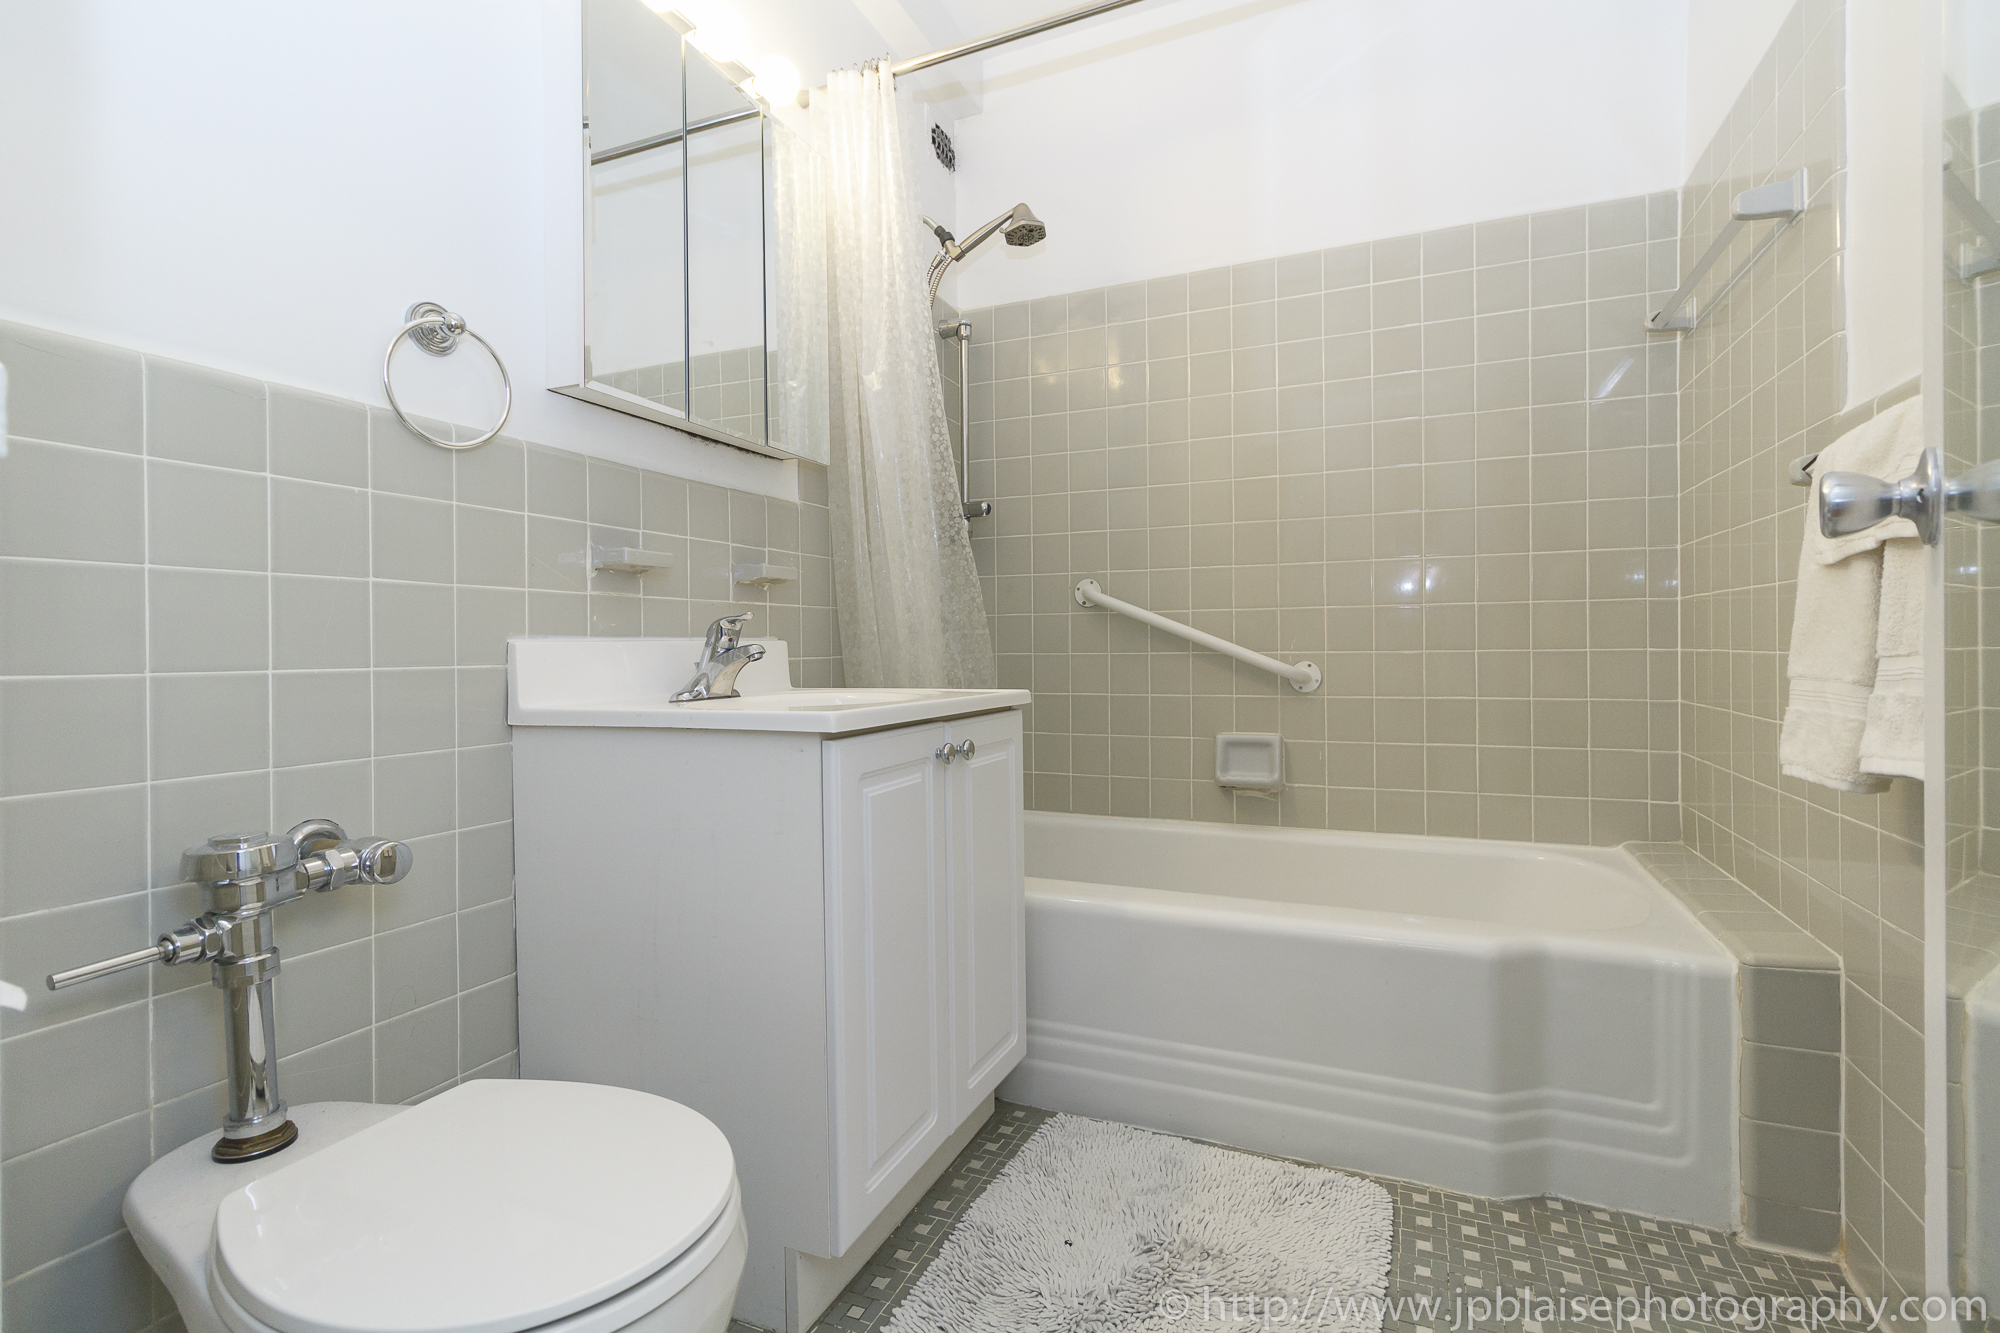 Apartment photographer ny new york real estate union square interior photography Manhattan alcove studio bathroom